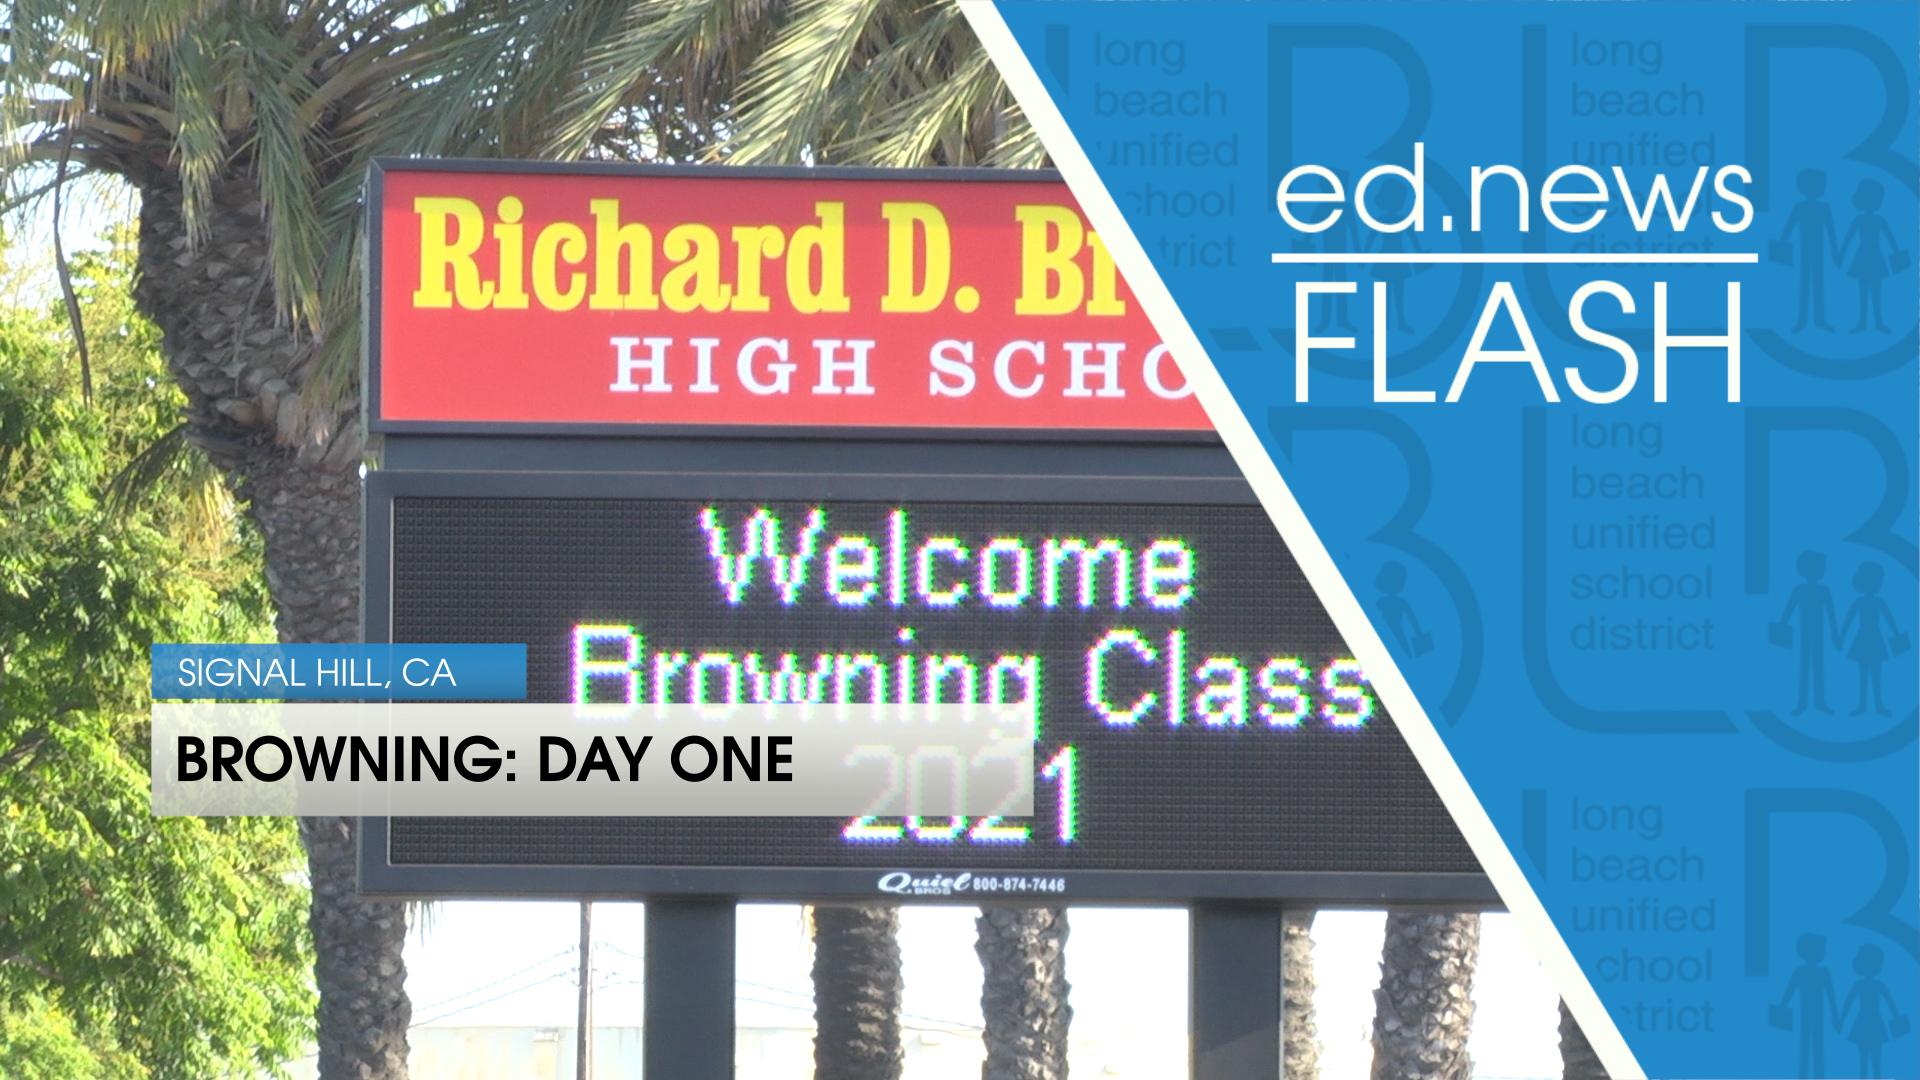 ed.news Flash - Browning: Day One [HD] - Video